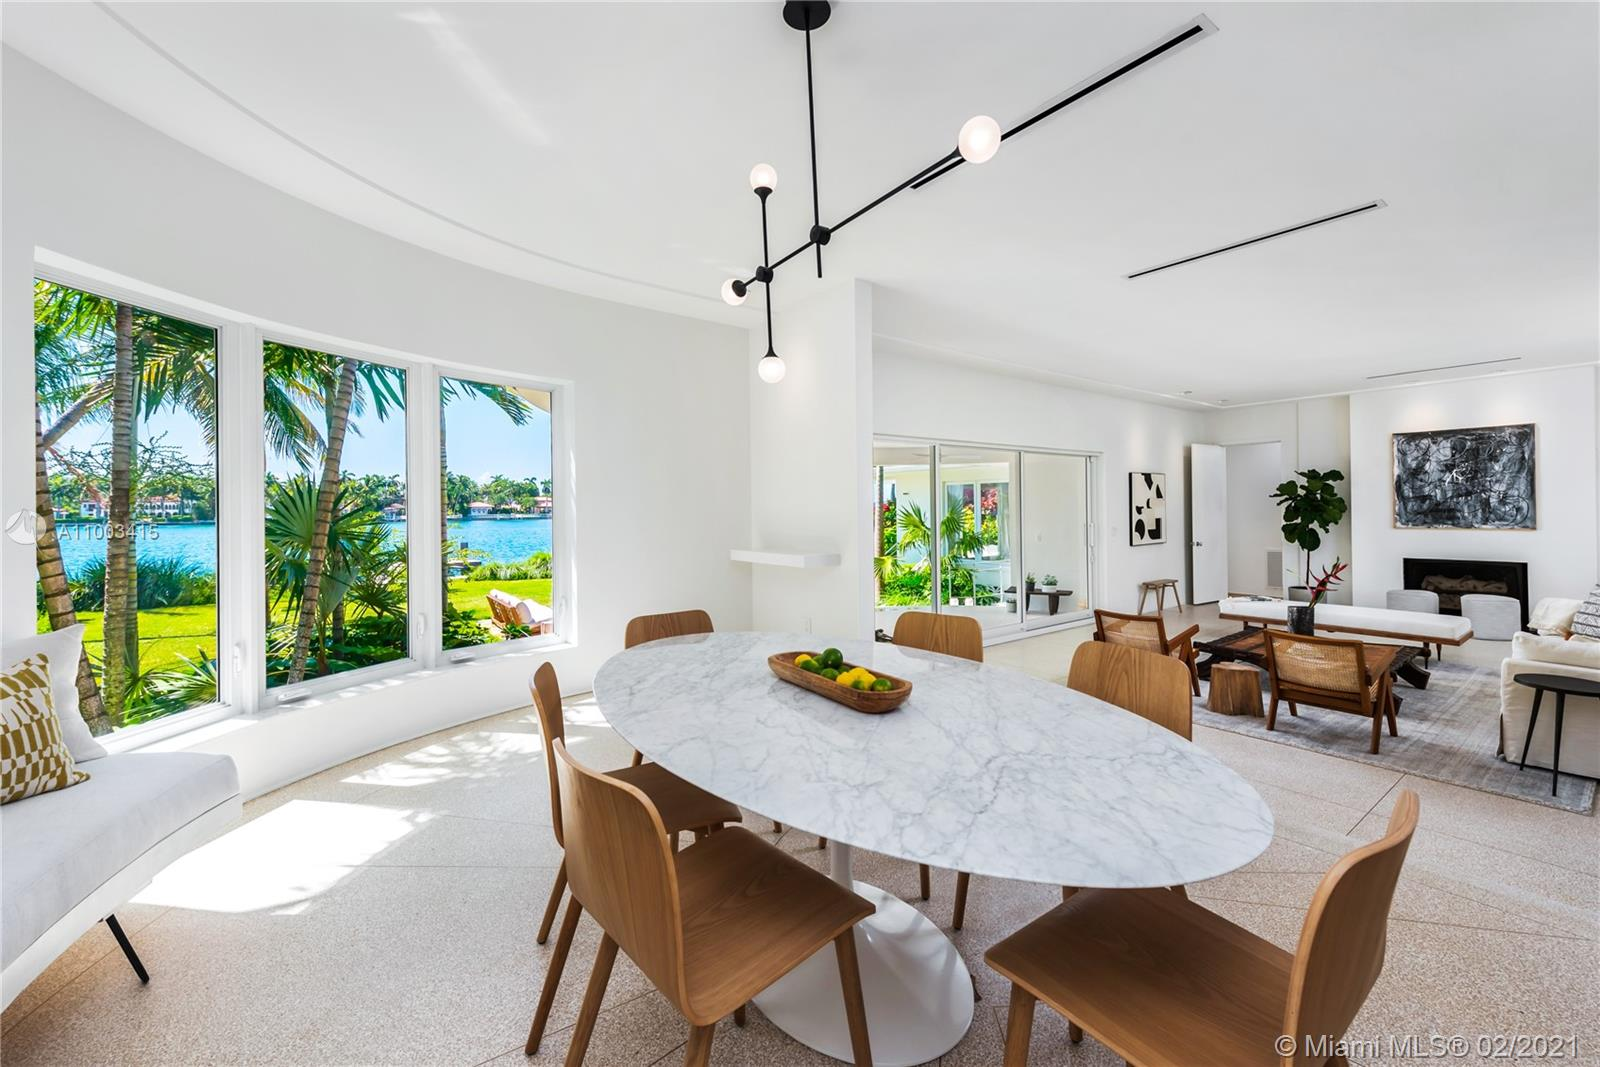 Isle of Normandy - 1340 Bay Dr, Miami Beach, FL 33141